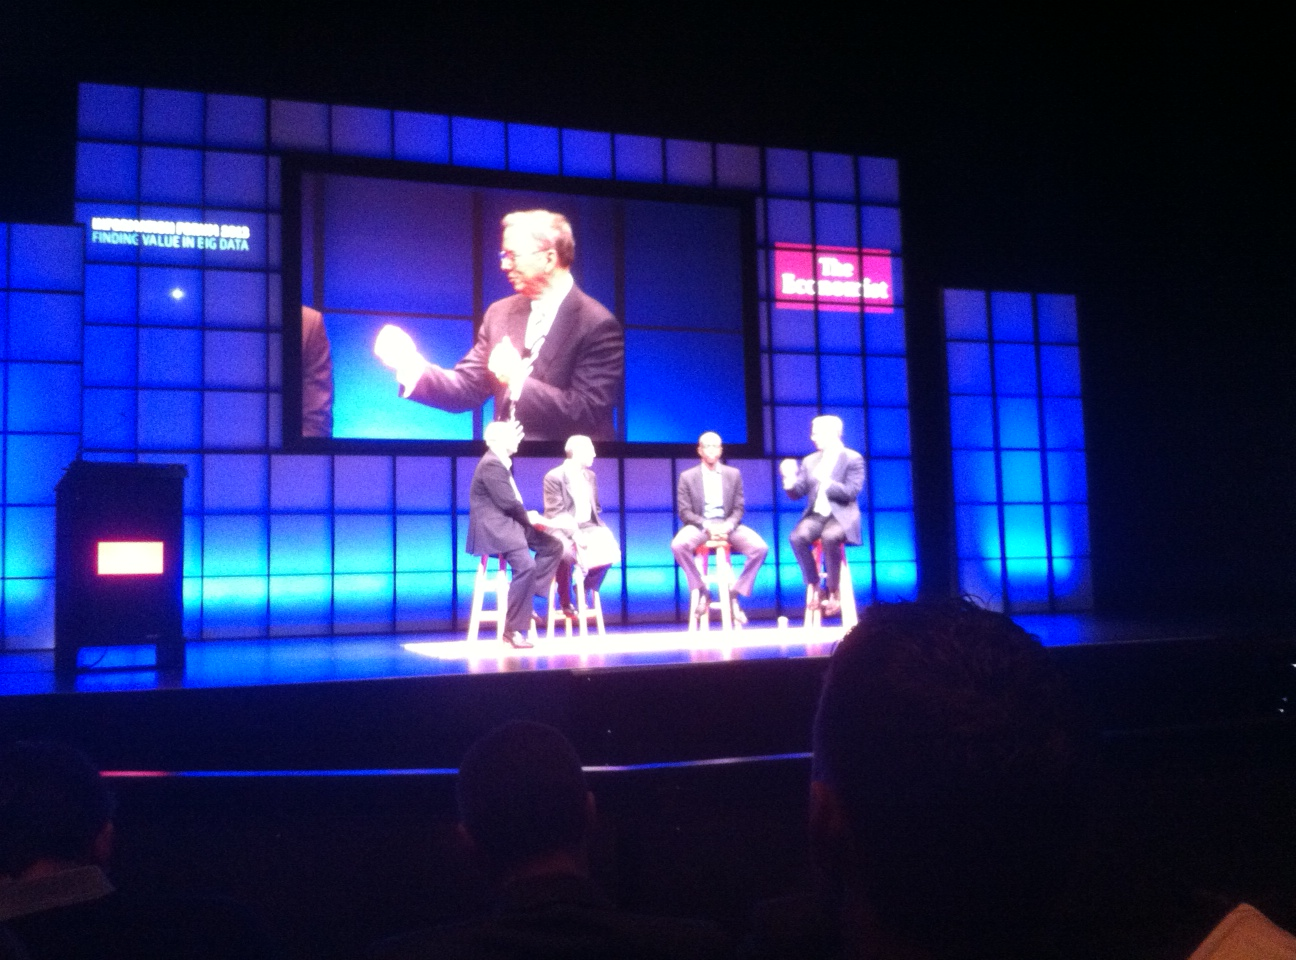 Eric Schmidt, executive chairman at Google, at the Economist's Information Forum in San Francisco on June 4, 2013